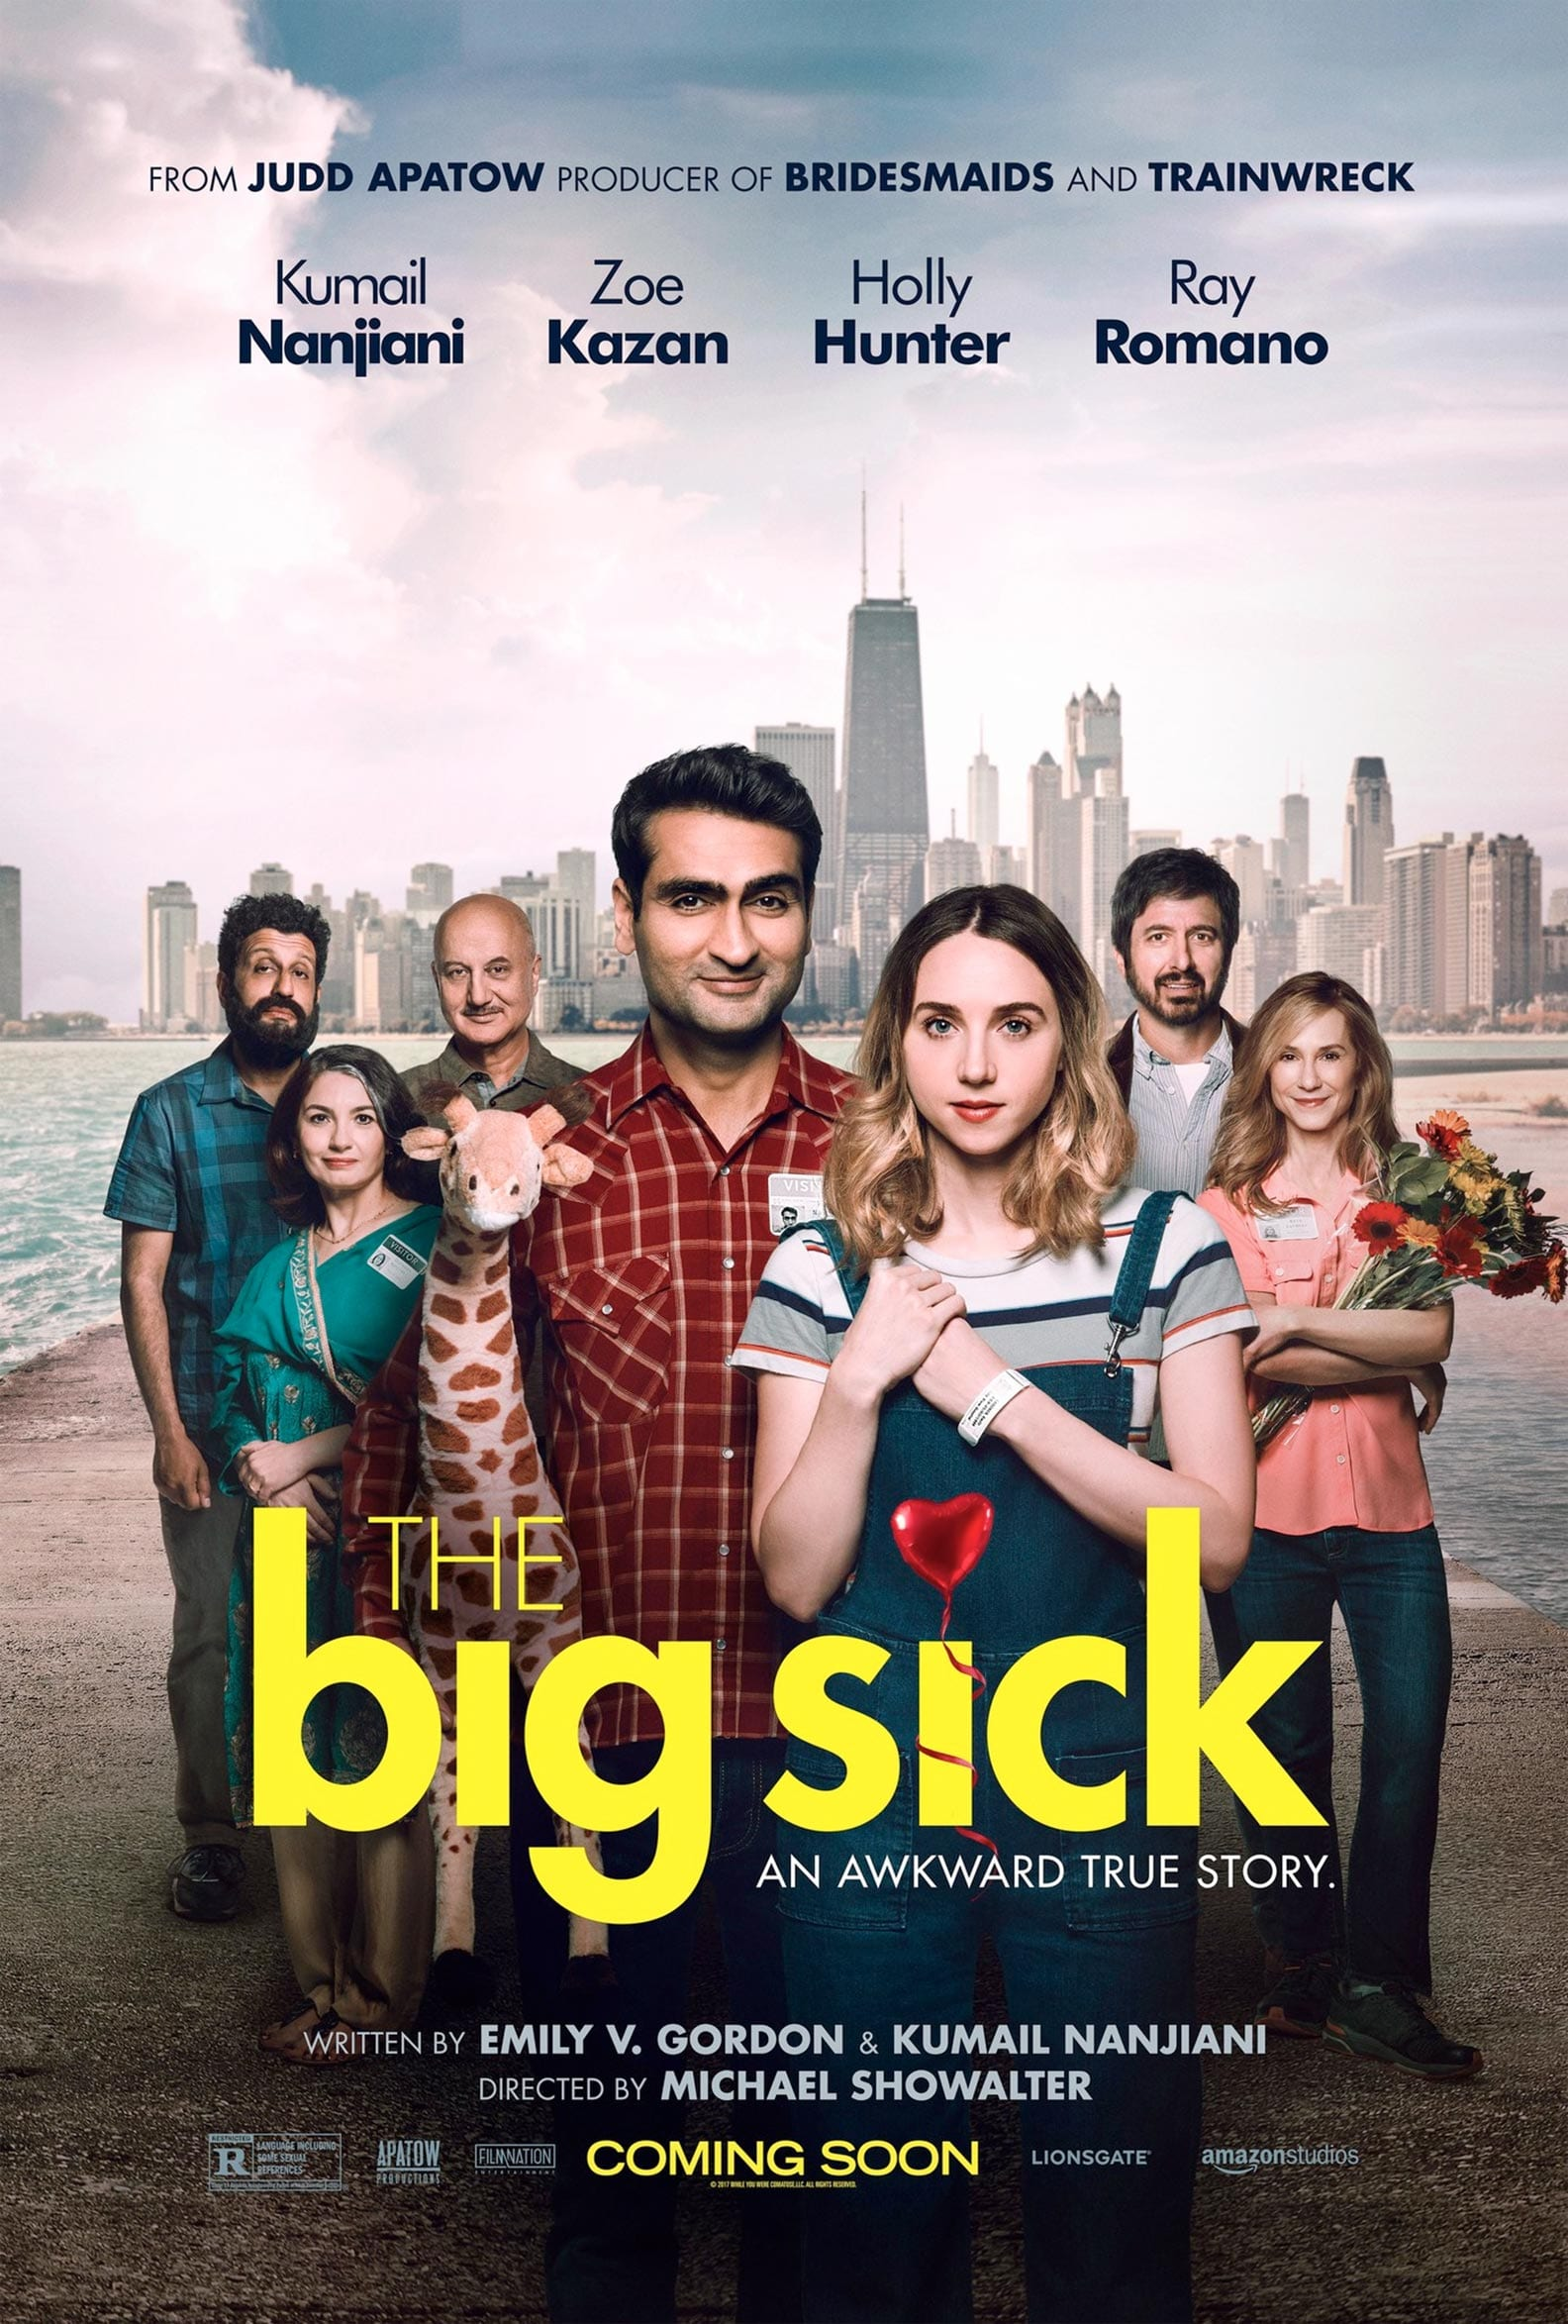 Amazon Studios debuts the trailer for romantic comedy 'The Big Sick' from Michael Showalter, set for a limited theatrical release this June.